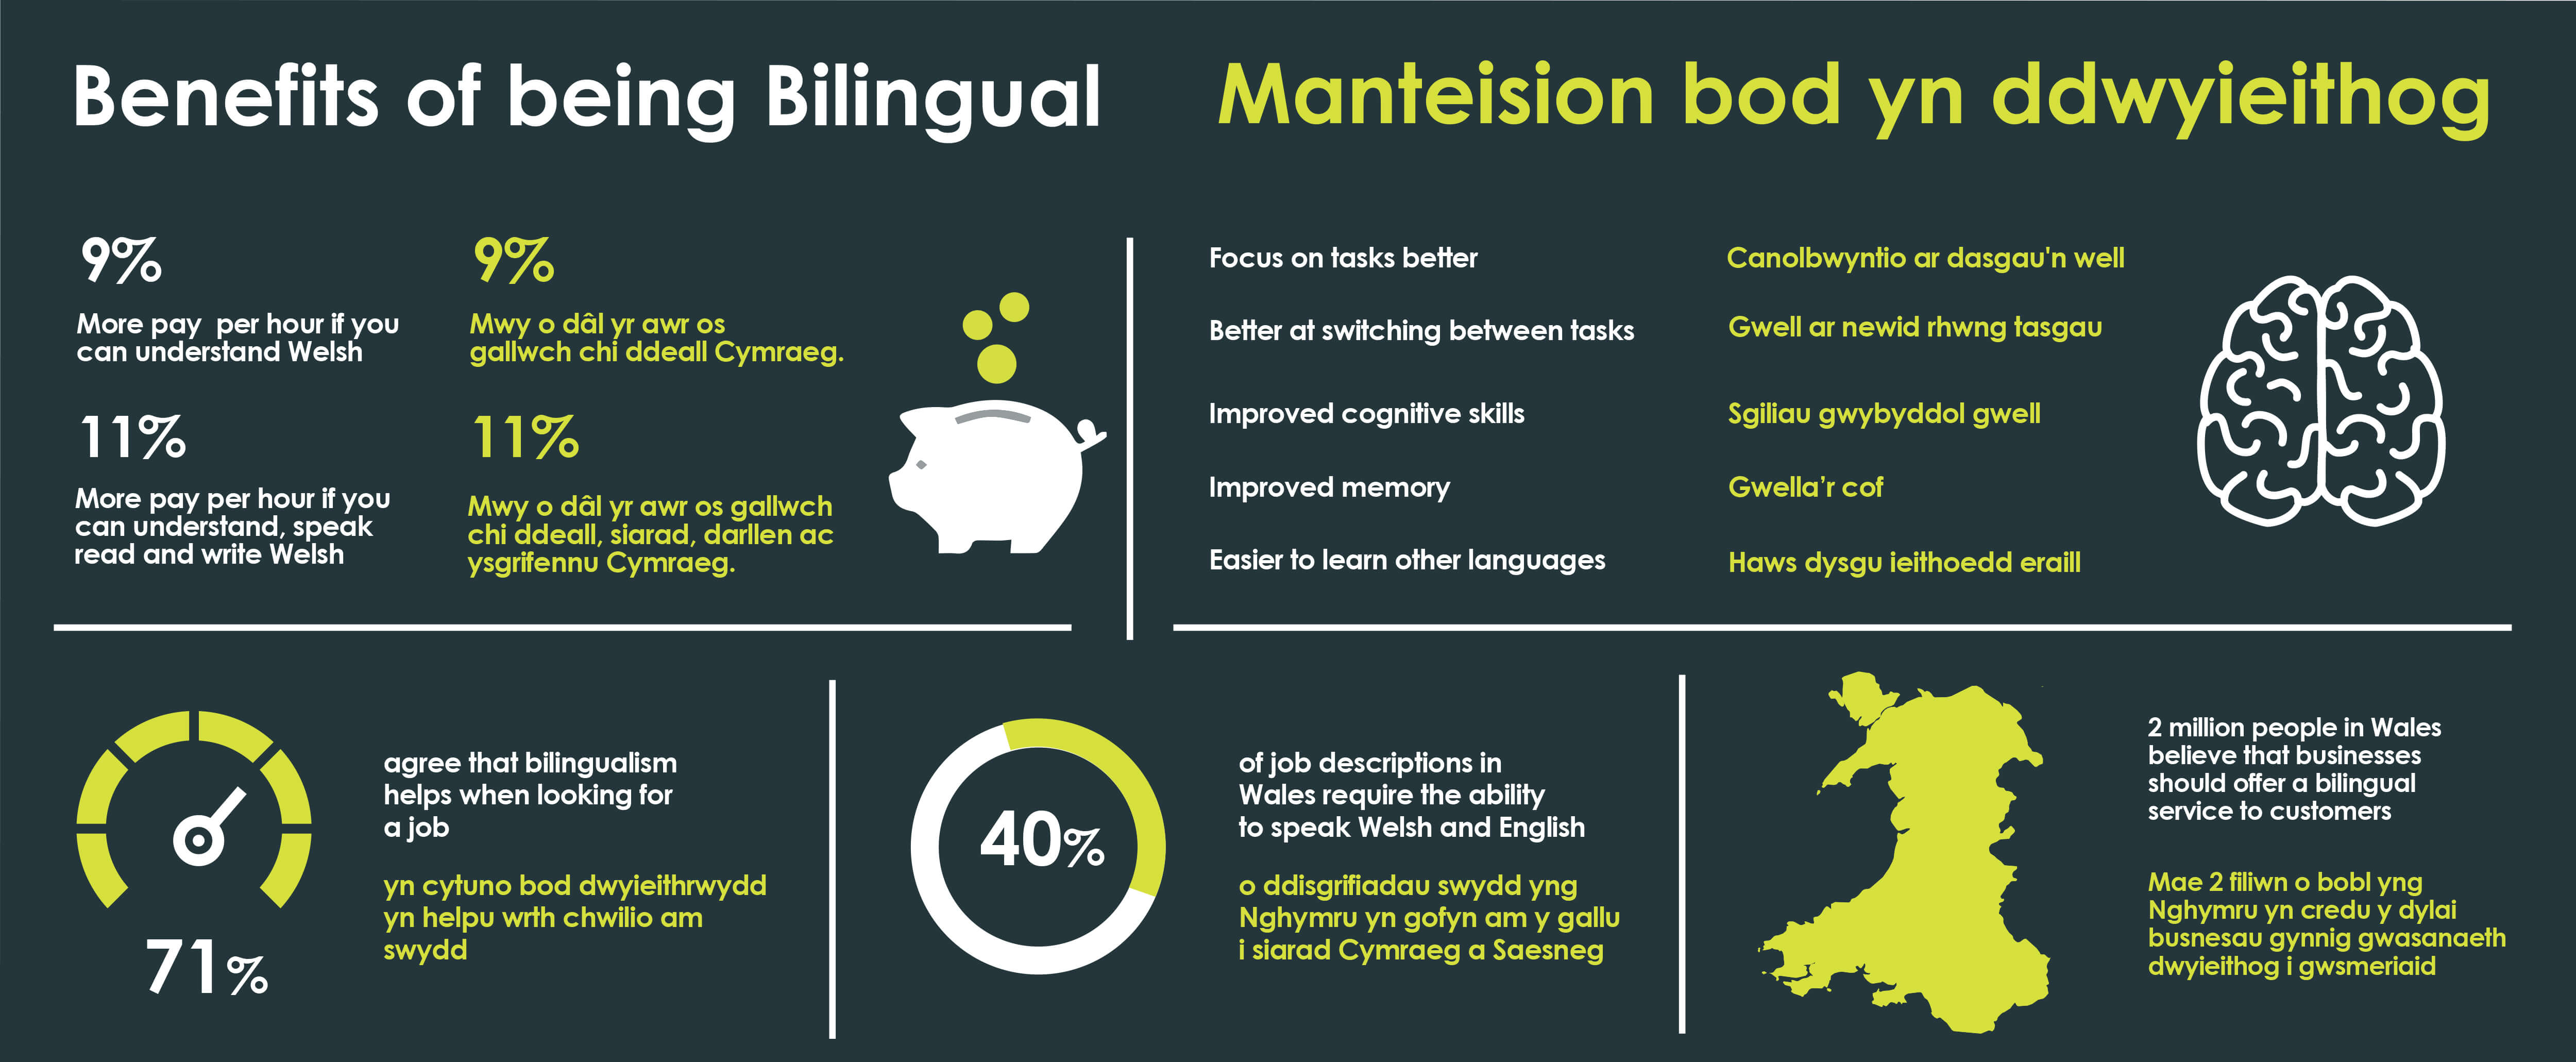 Benefits of being bilingual infographic